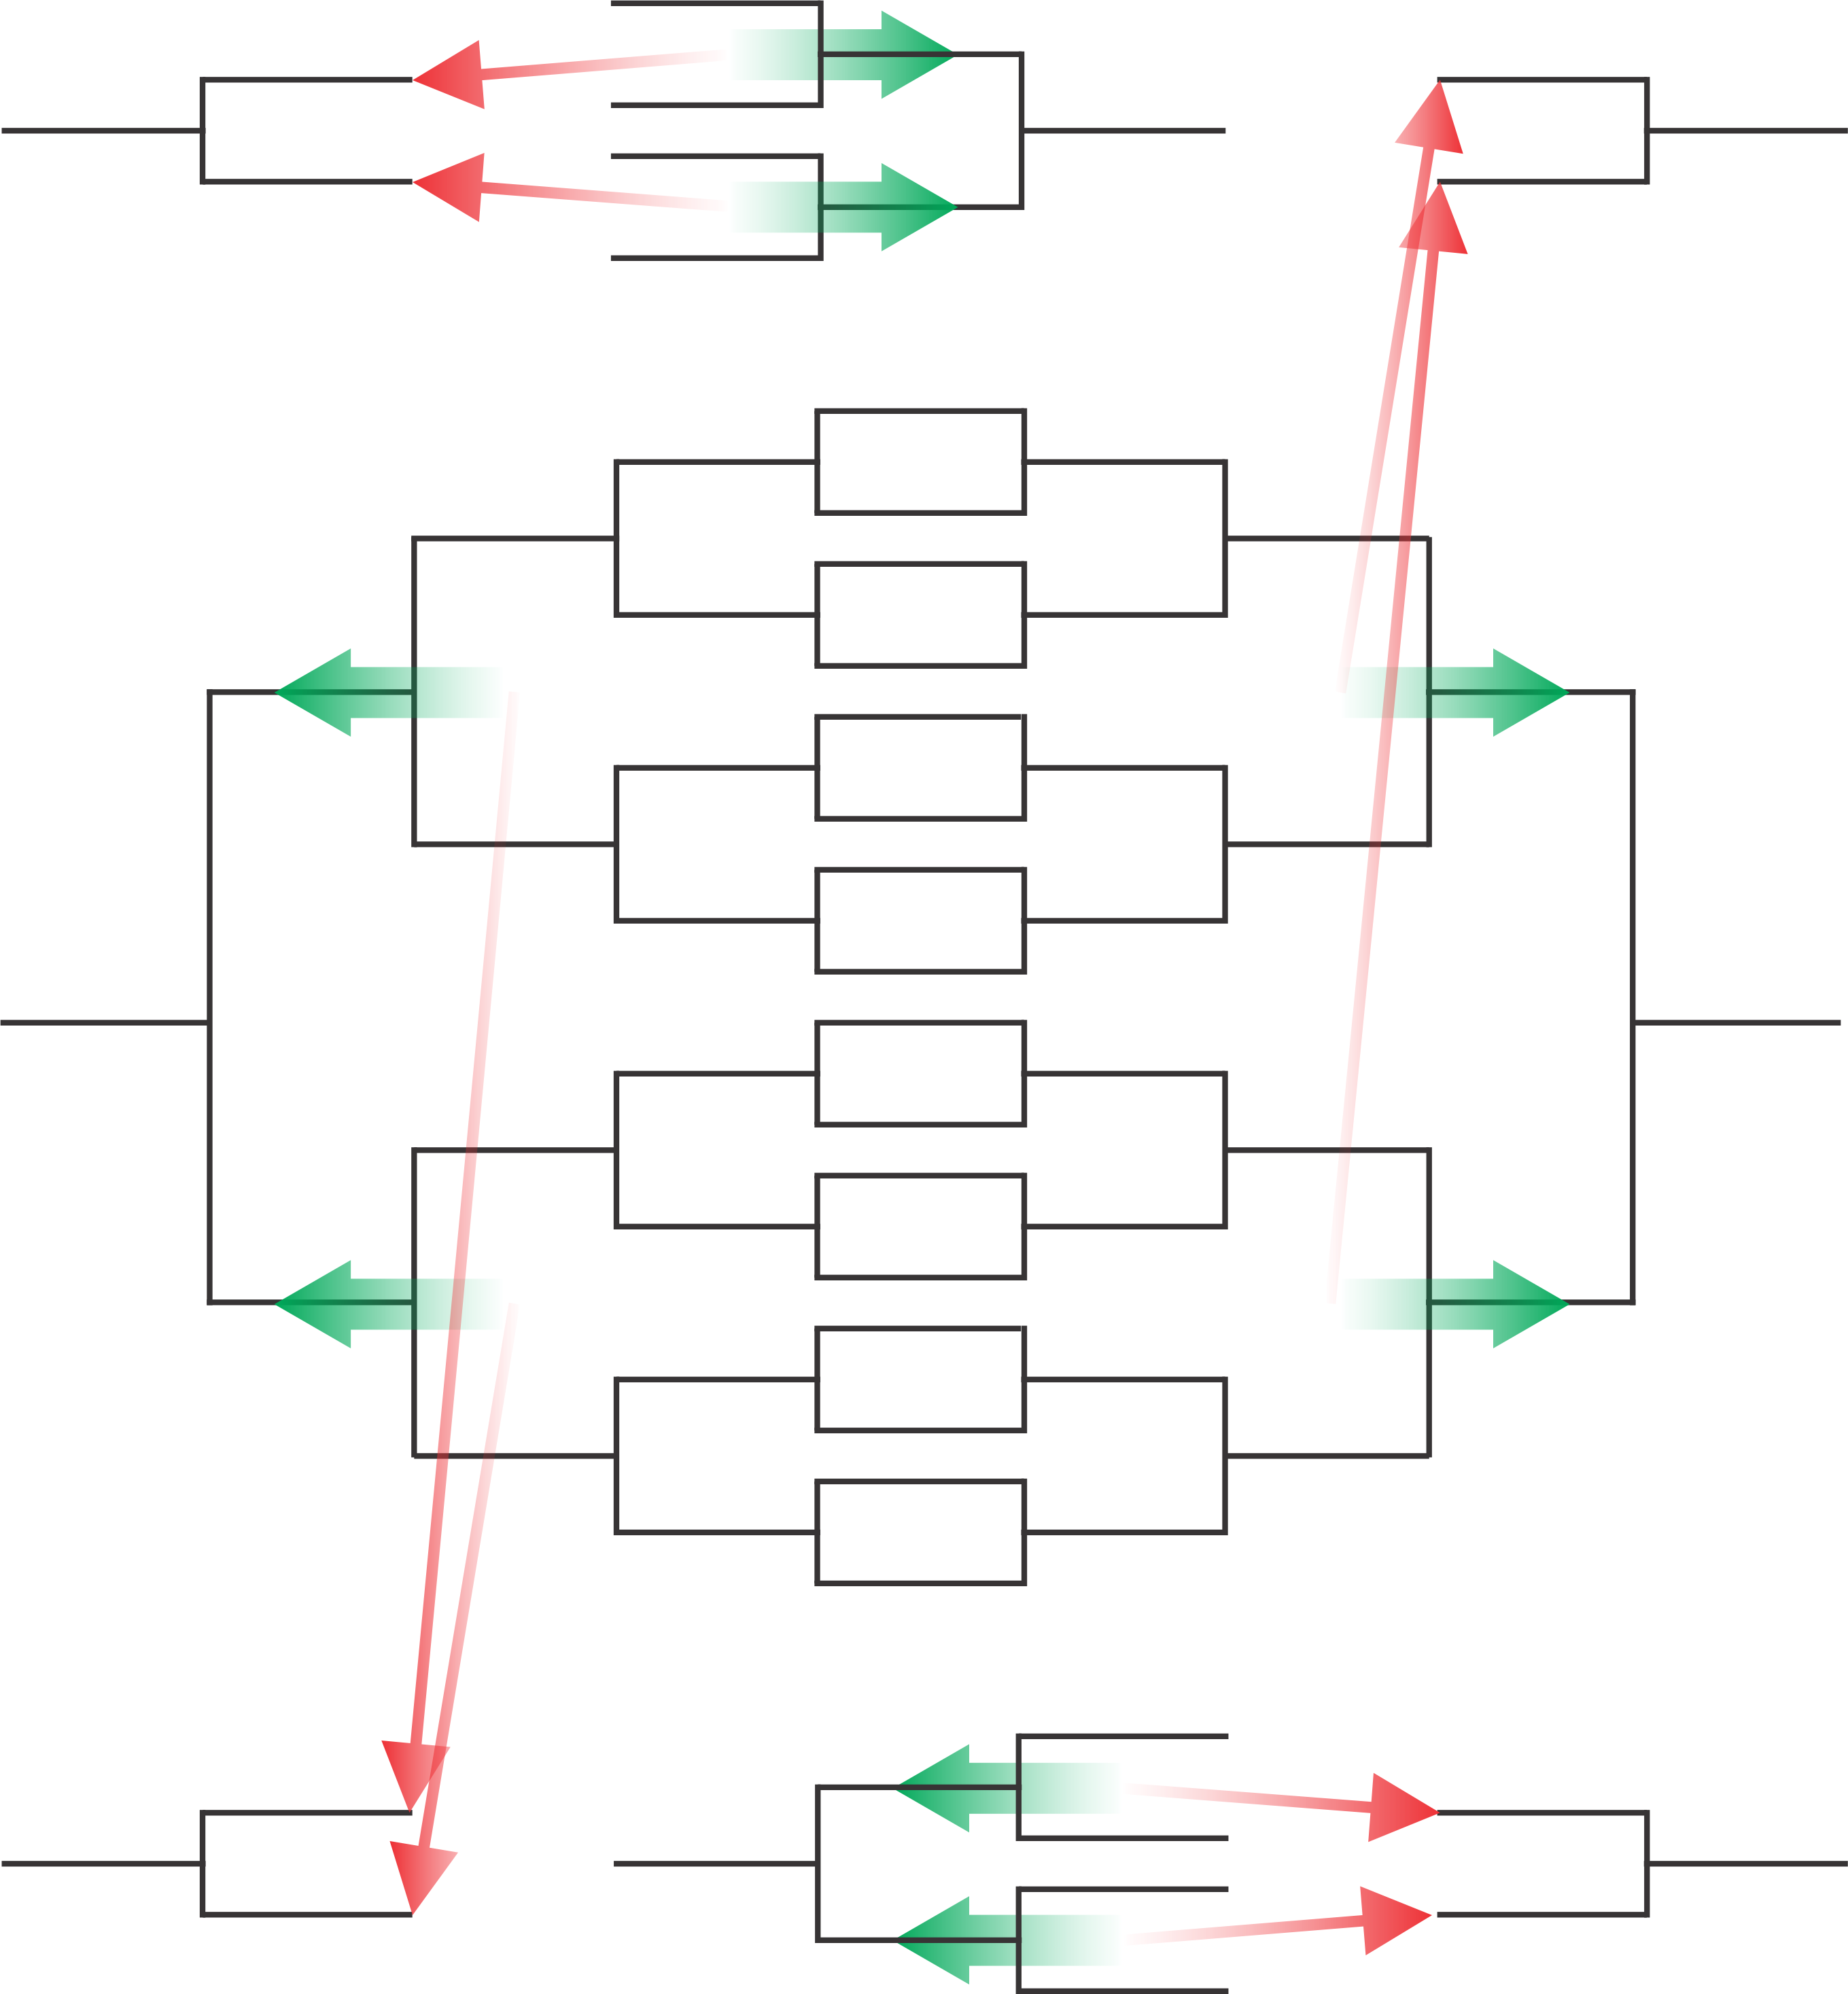 Compass Draw Tennis diagram for round 3